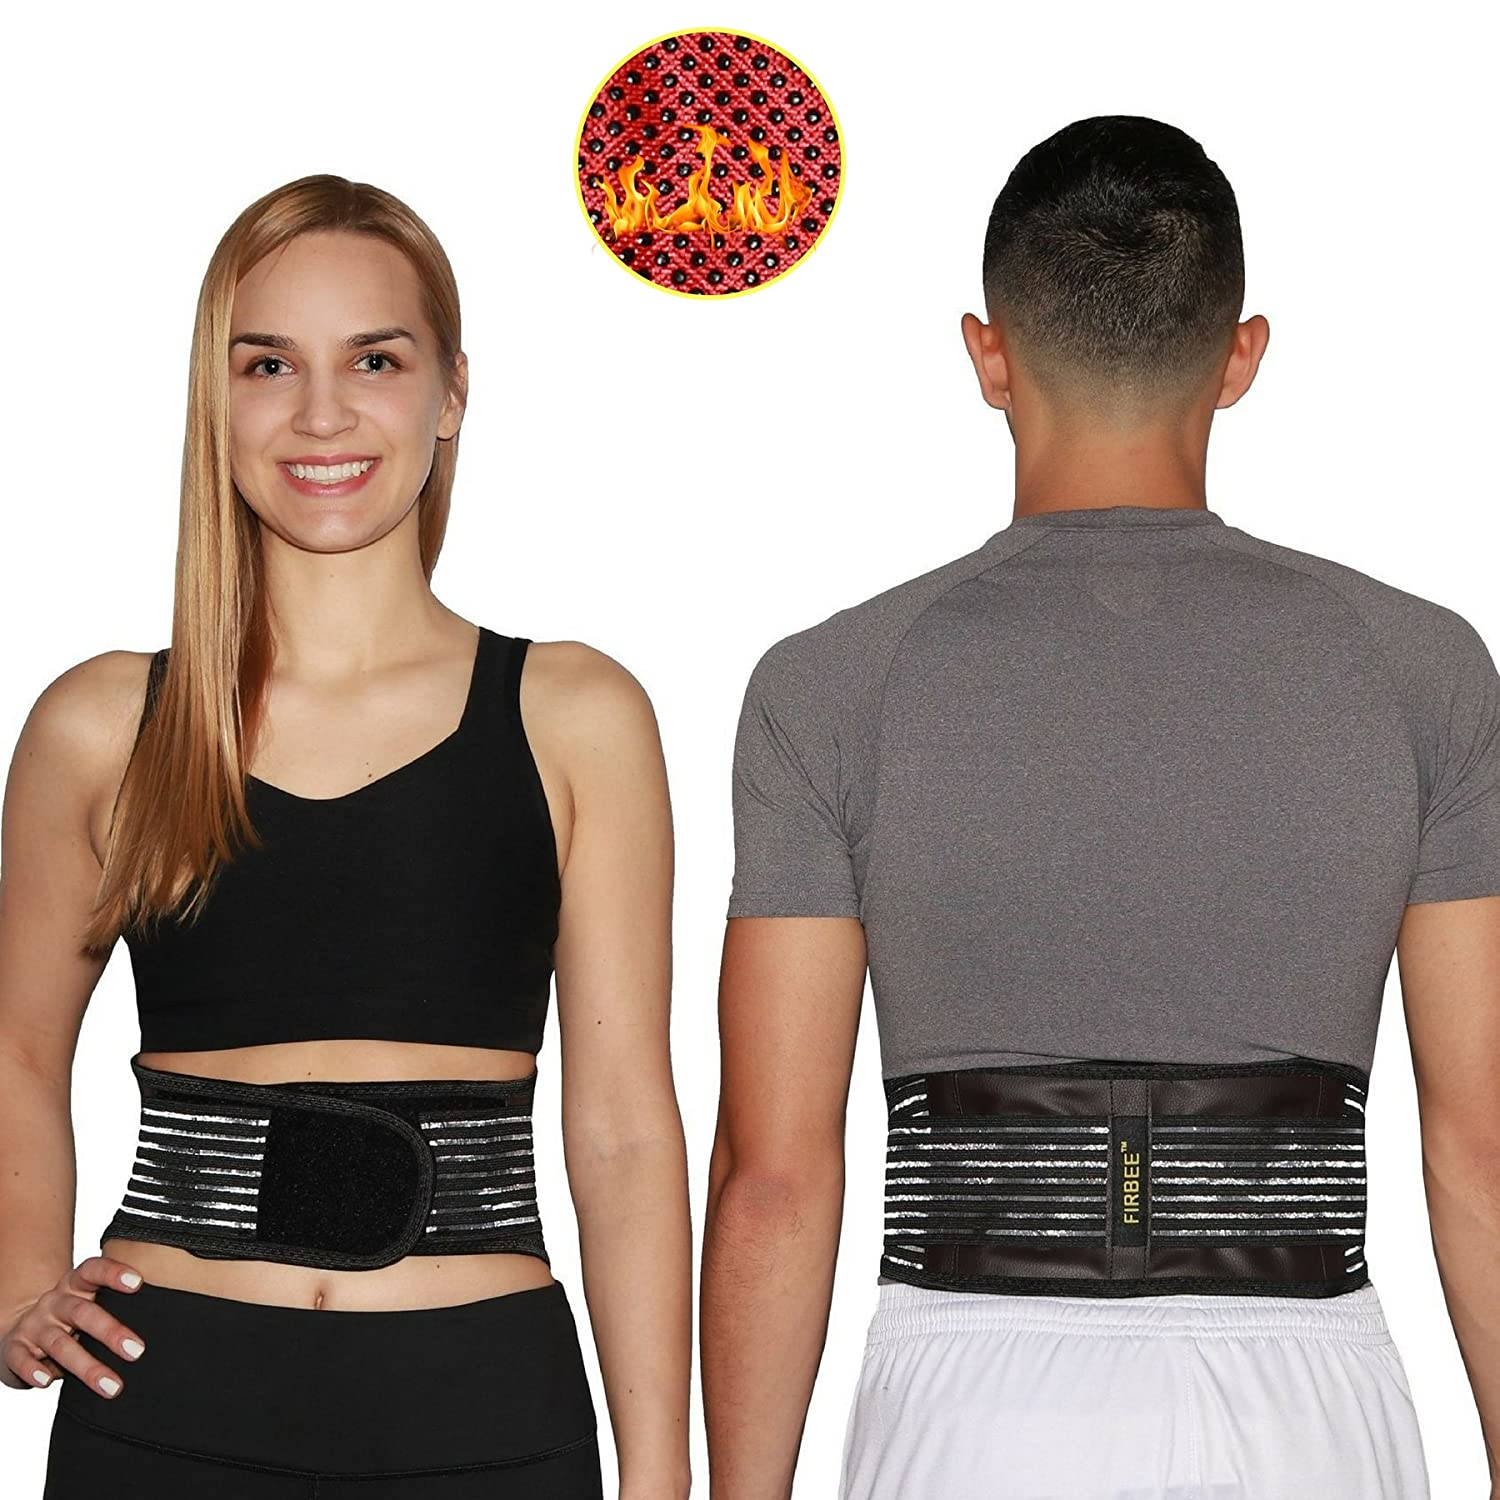 FIRBEE Self-Heating, Tourmaline and Magnetic Therapy Belt for Pain Relief and Lumbar Support | Lower Back Brace and Waist Trimmer | Bonus Drawstring Backpack